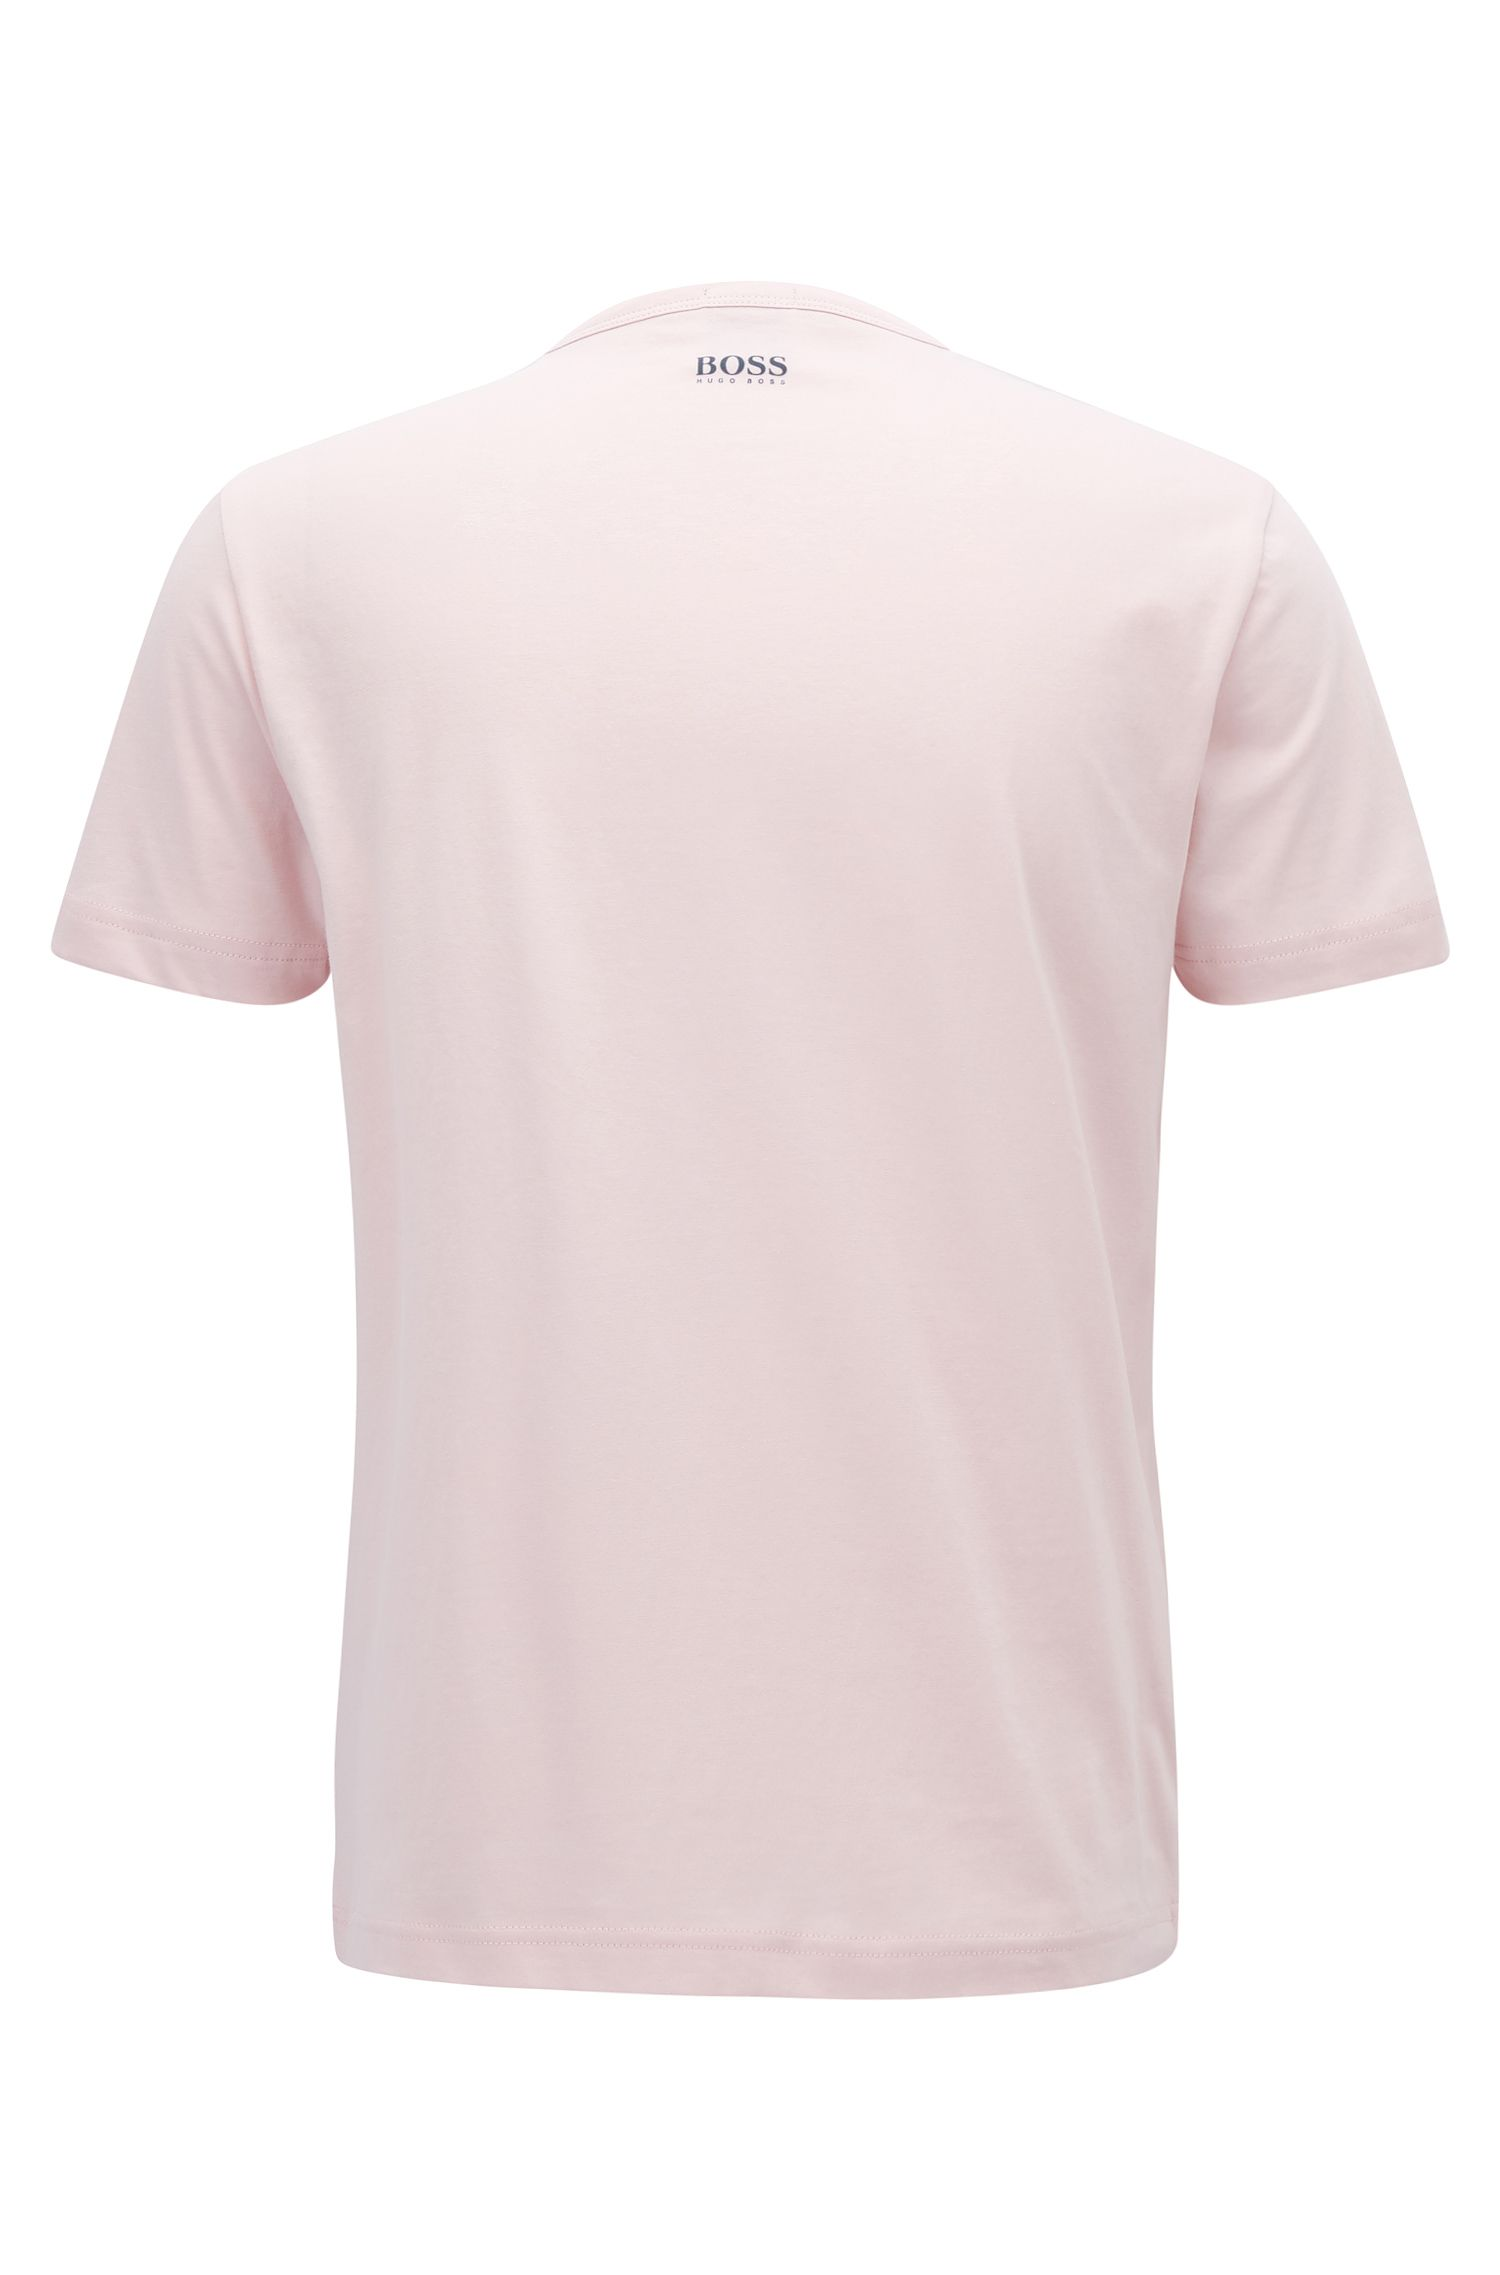 Logo Cotton Graphic T-Shirt | Tee, light pink